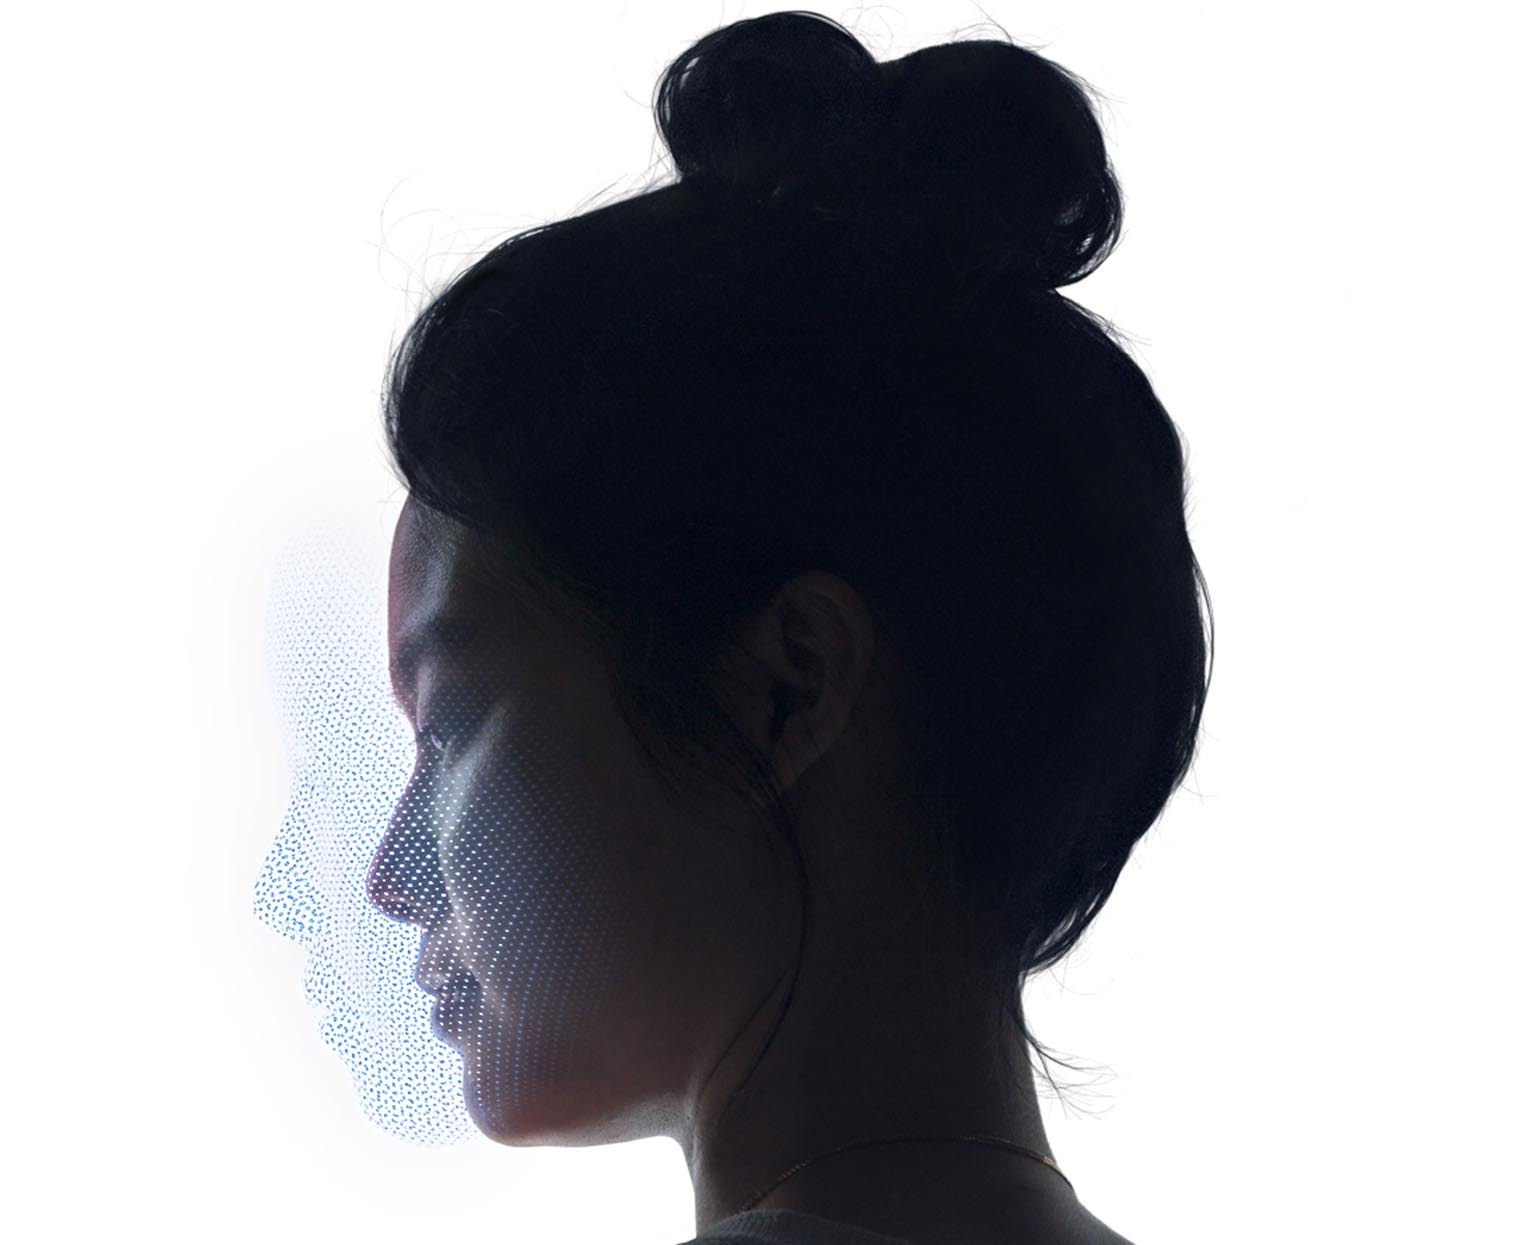 Face ID points